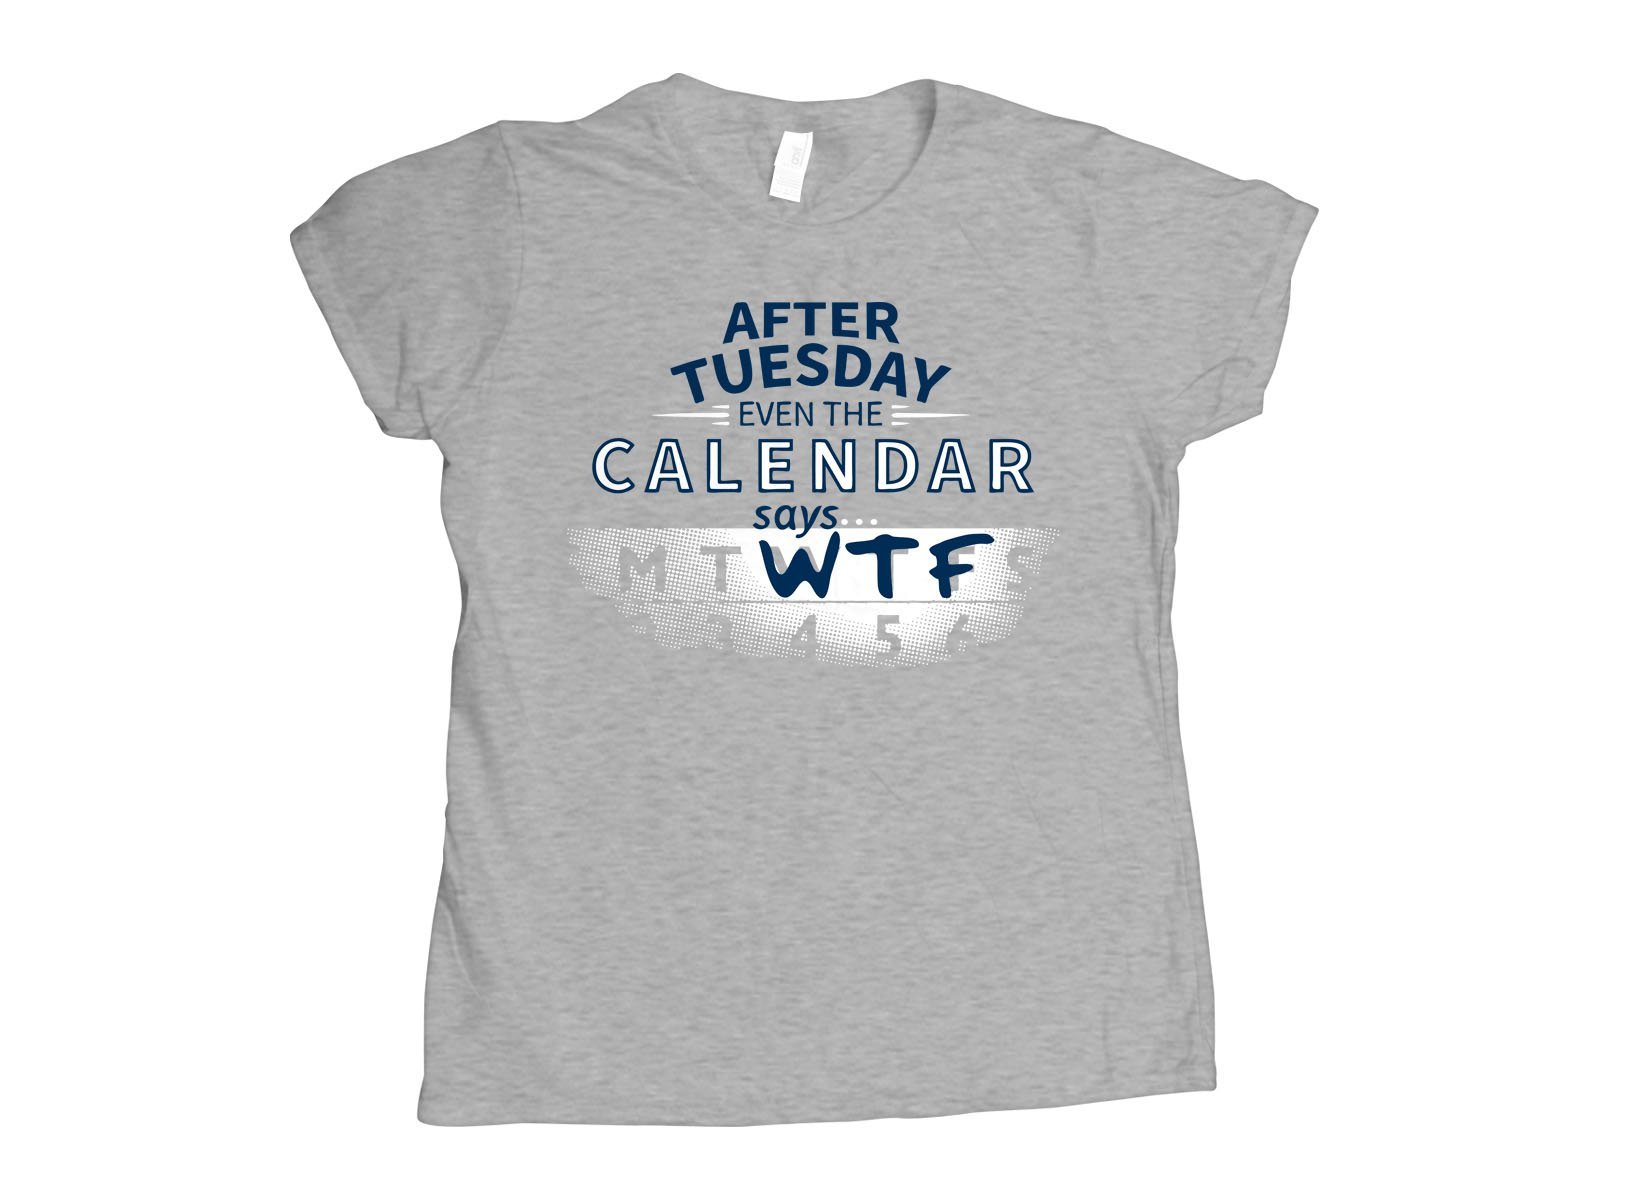 After Tuesday Even The Calendar Says WTF on Womens T-Shirt